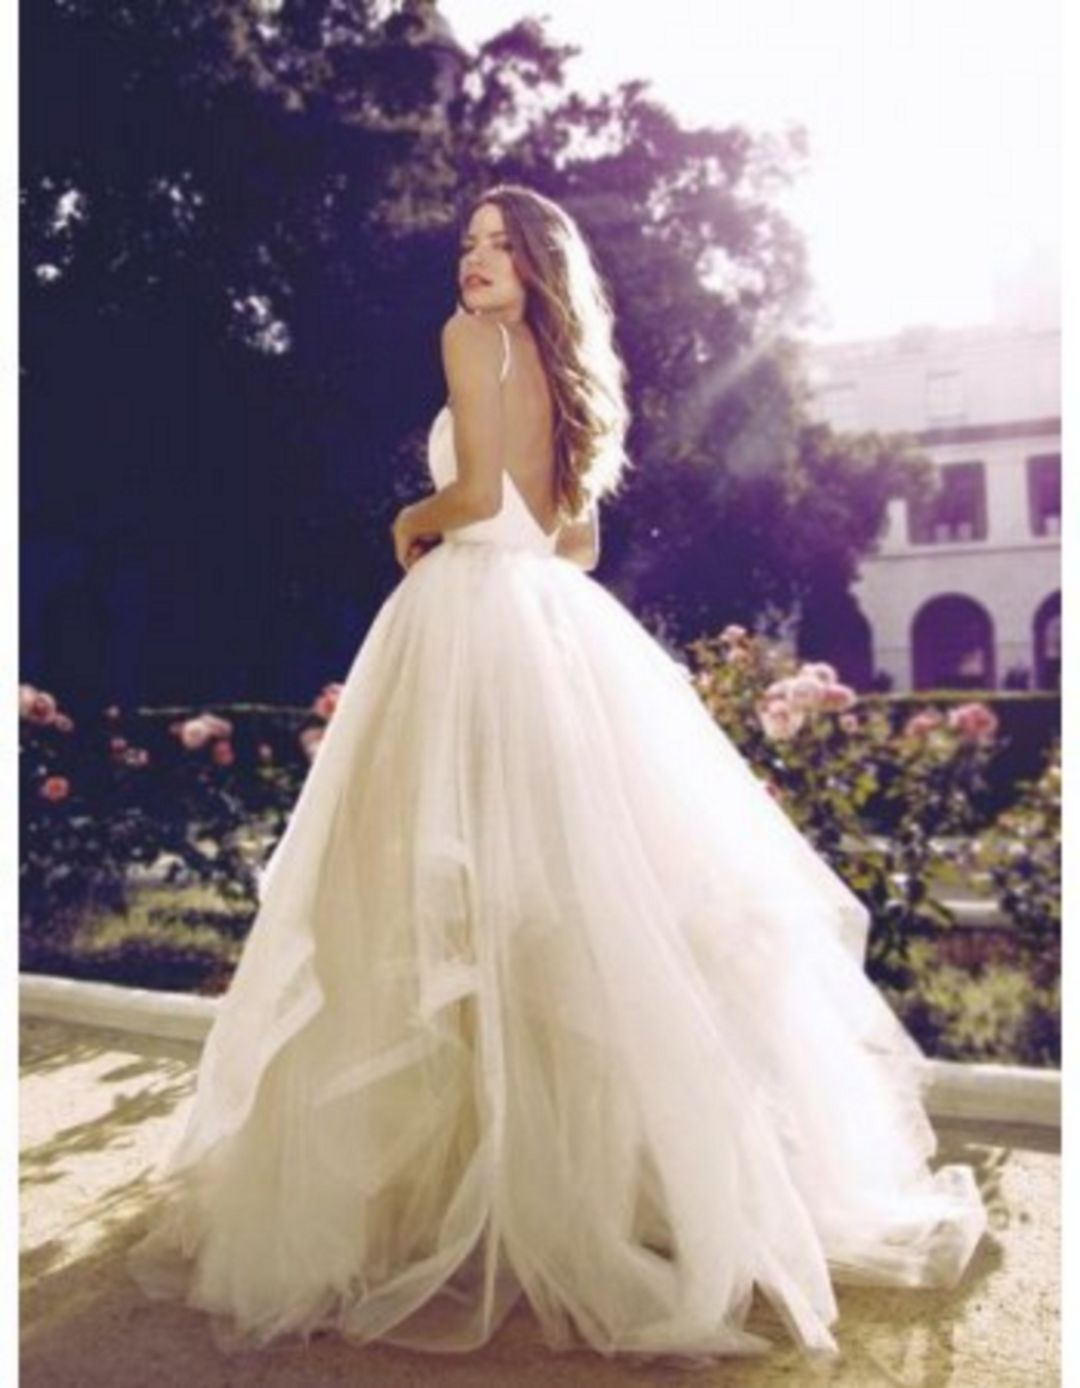 Ball gown wedding dress with bling   Most Beautiful White Wedding Dress Ball Gown Ideas For The